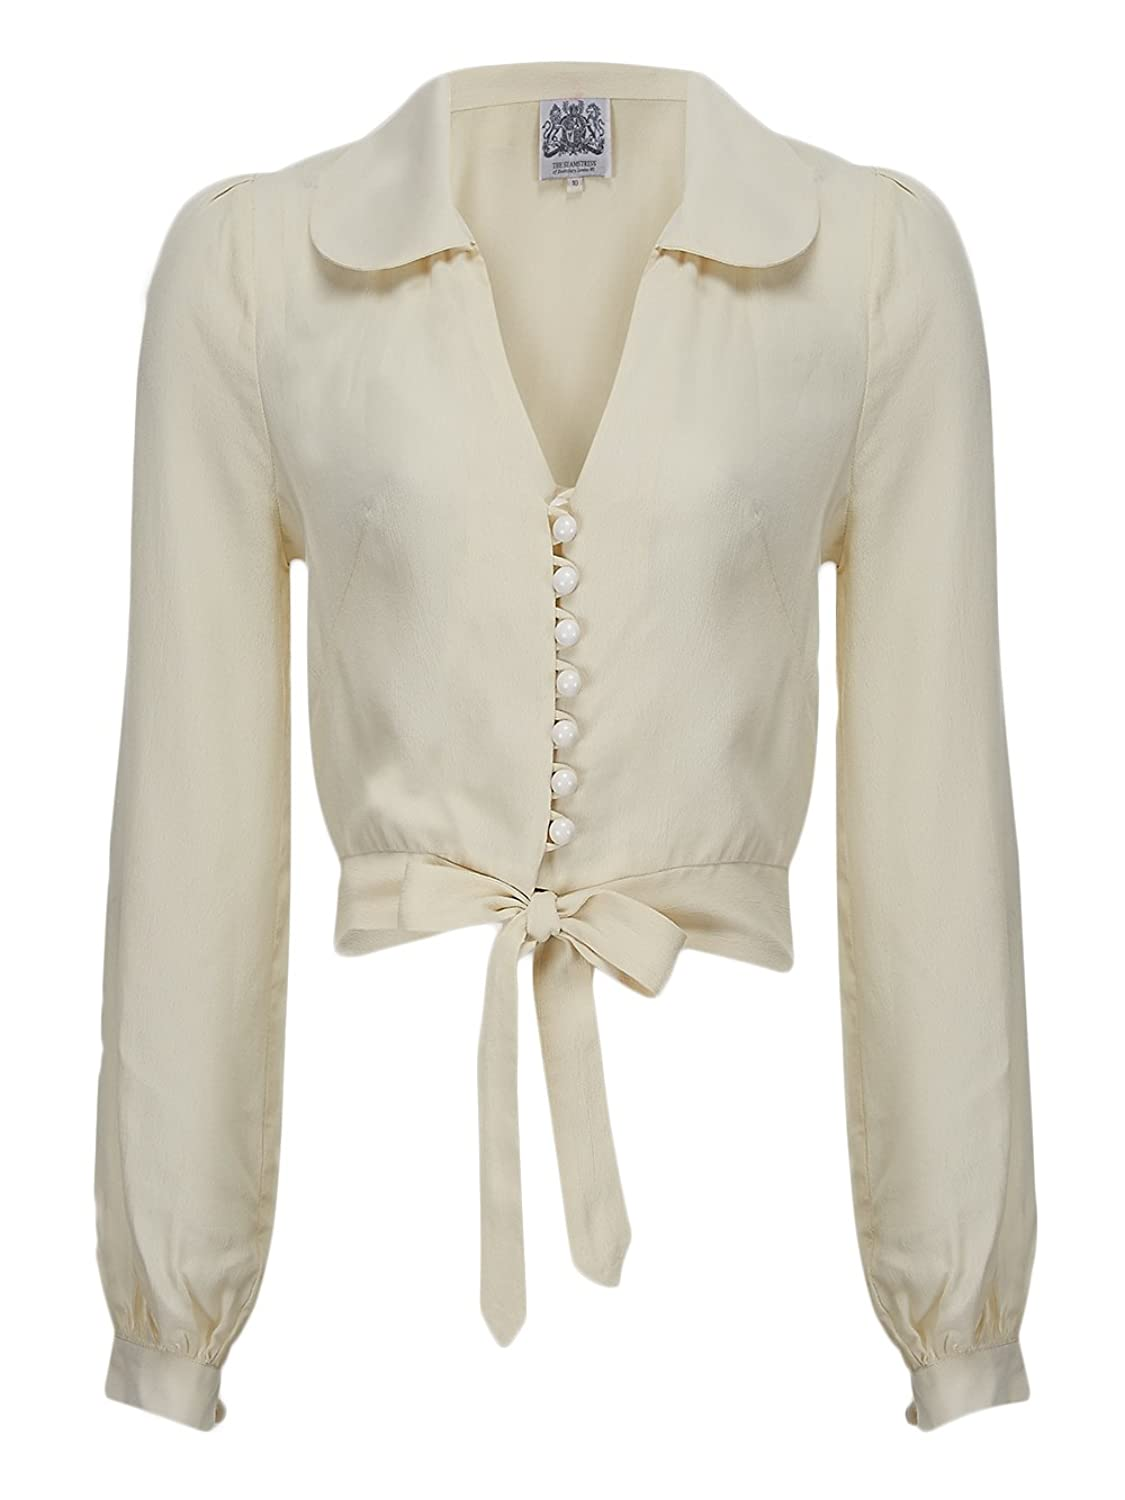 Agent Peggy Carter Costume, Dress, Hats 1940s/50s Authentic Vintage Inspired Button Up Tie Down Blouse in Cream £39.00 AT vintagedancer.com